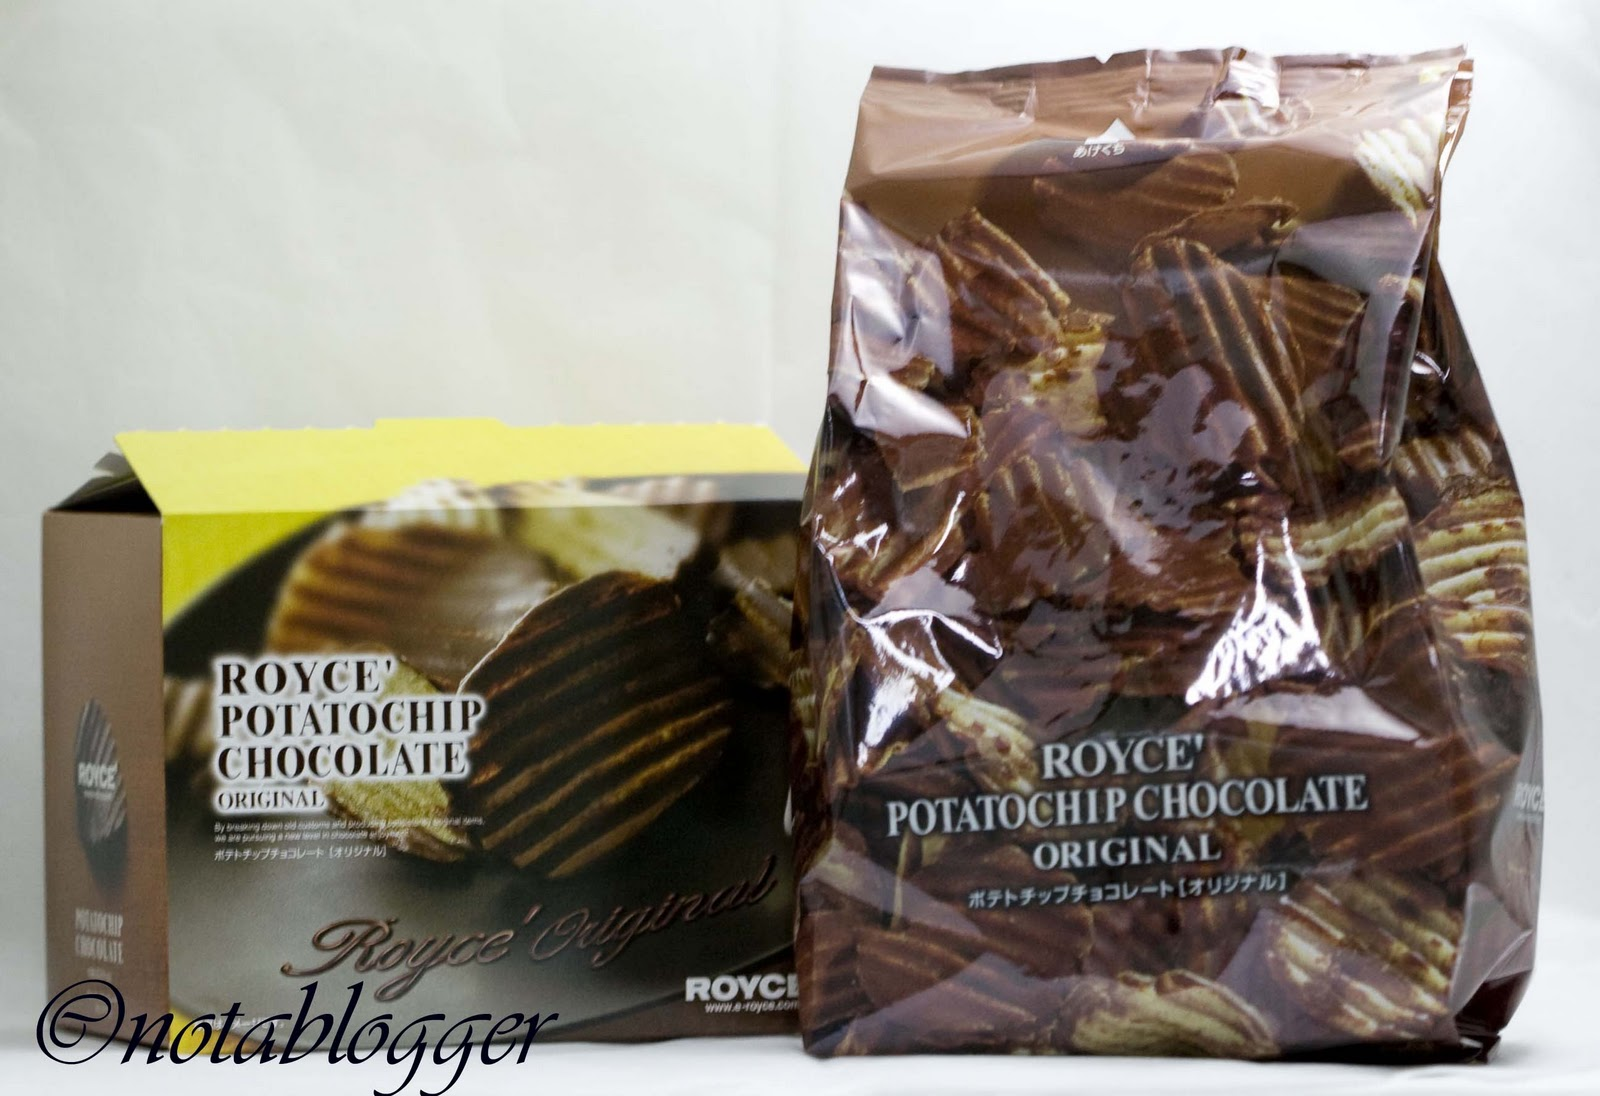 I Am Not A Blogger.: Royce Potato Chip Chocolate